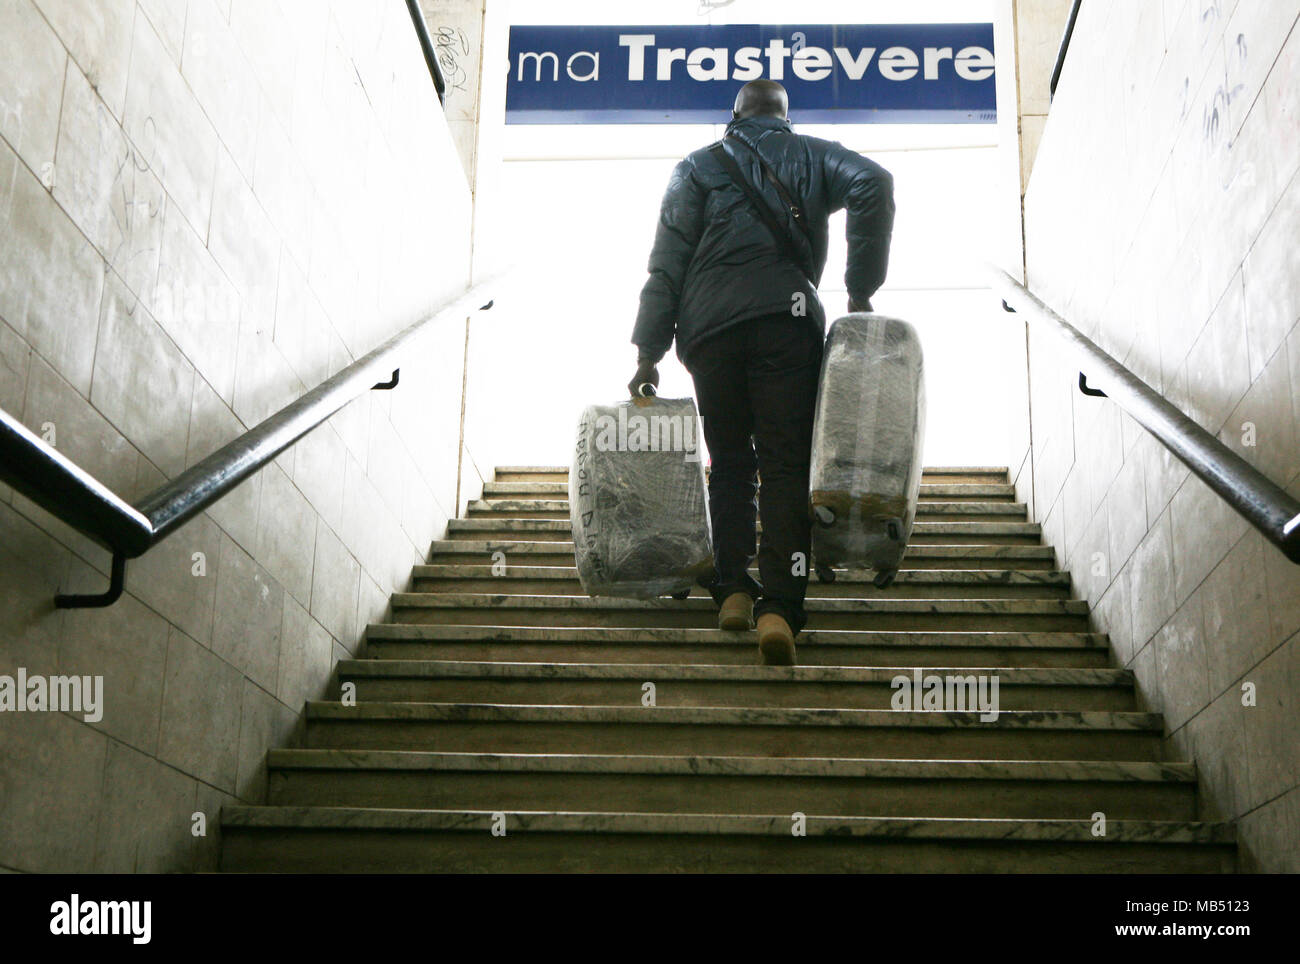 Passenger climbing up the stair with luggage at Trastevere railway station, Rome, Italy - Stock Image